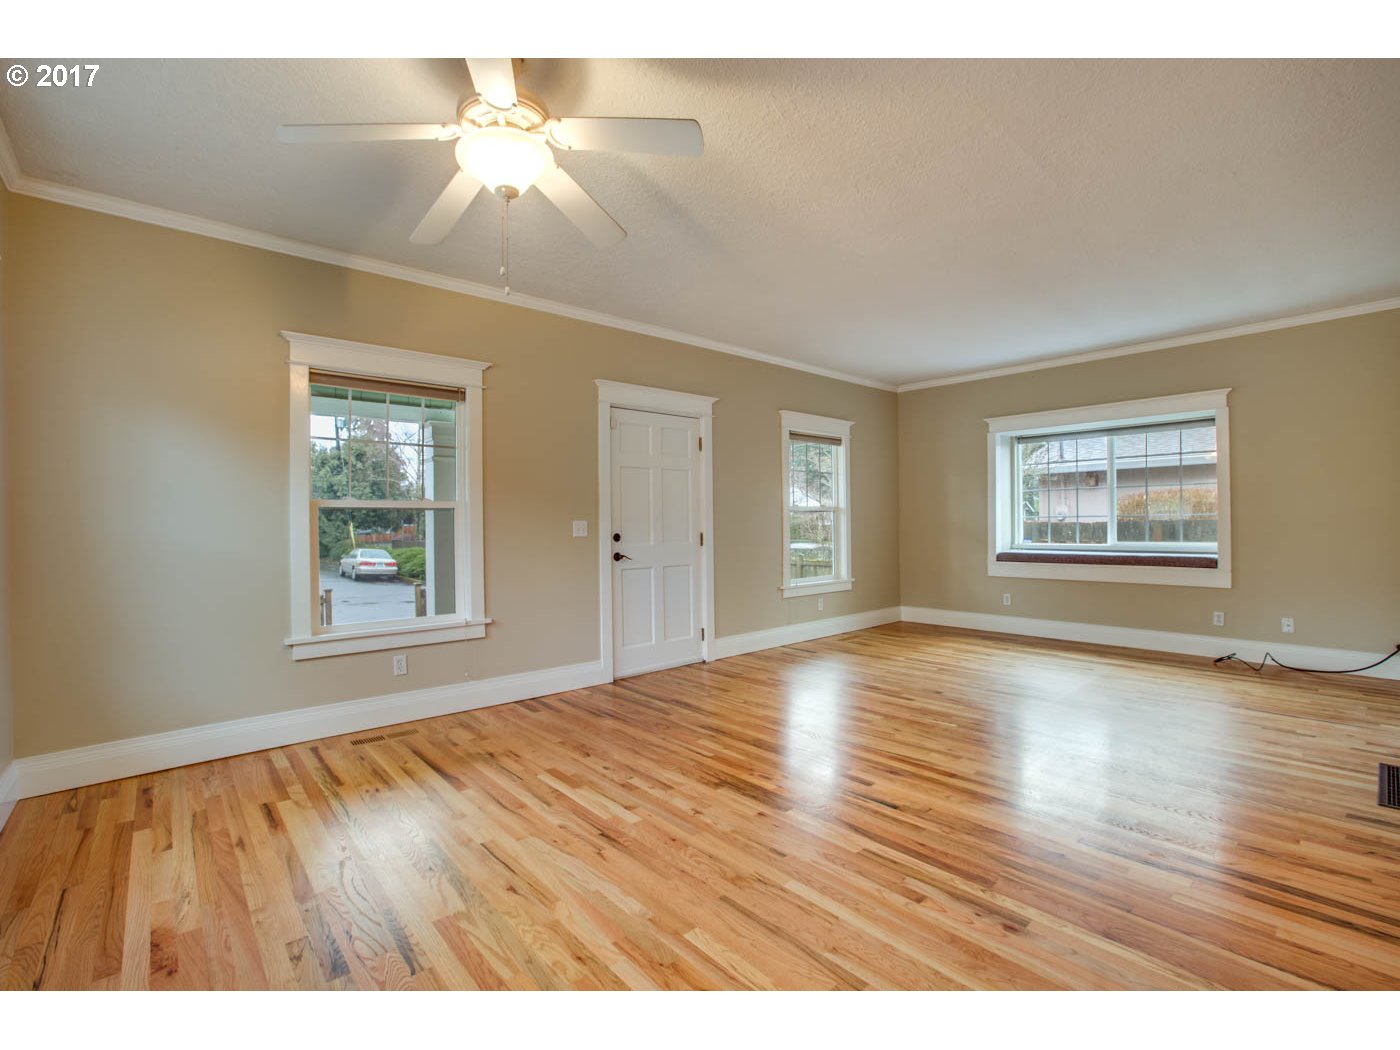 1140 sq. ft 2 bedrooms 1 bathrooms  House For Sale,Portland, OR